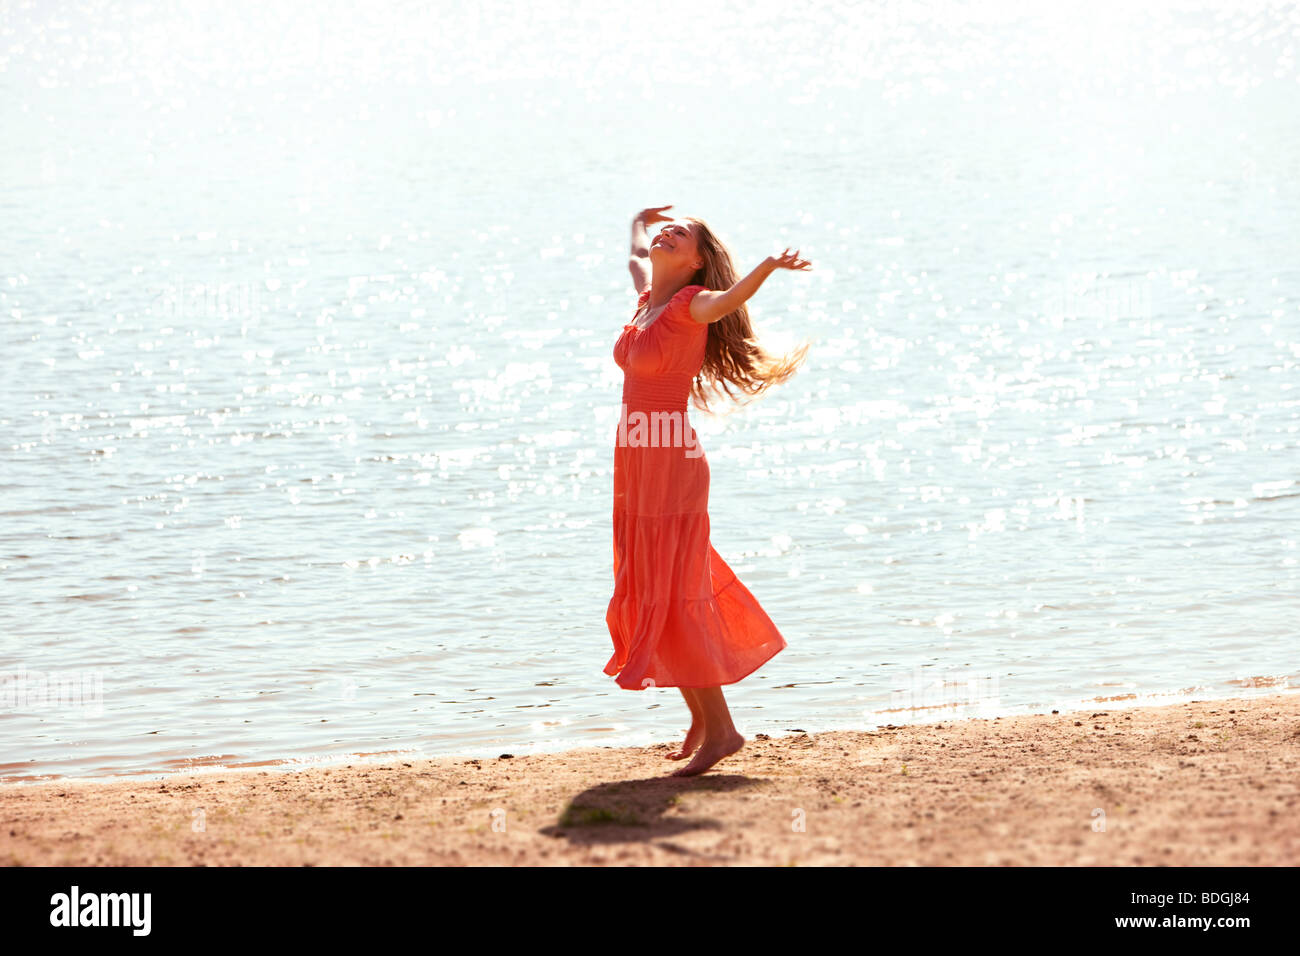 Woman dancing on a beach with abandon, arms outstretched. - Stock Image